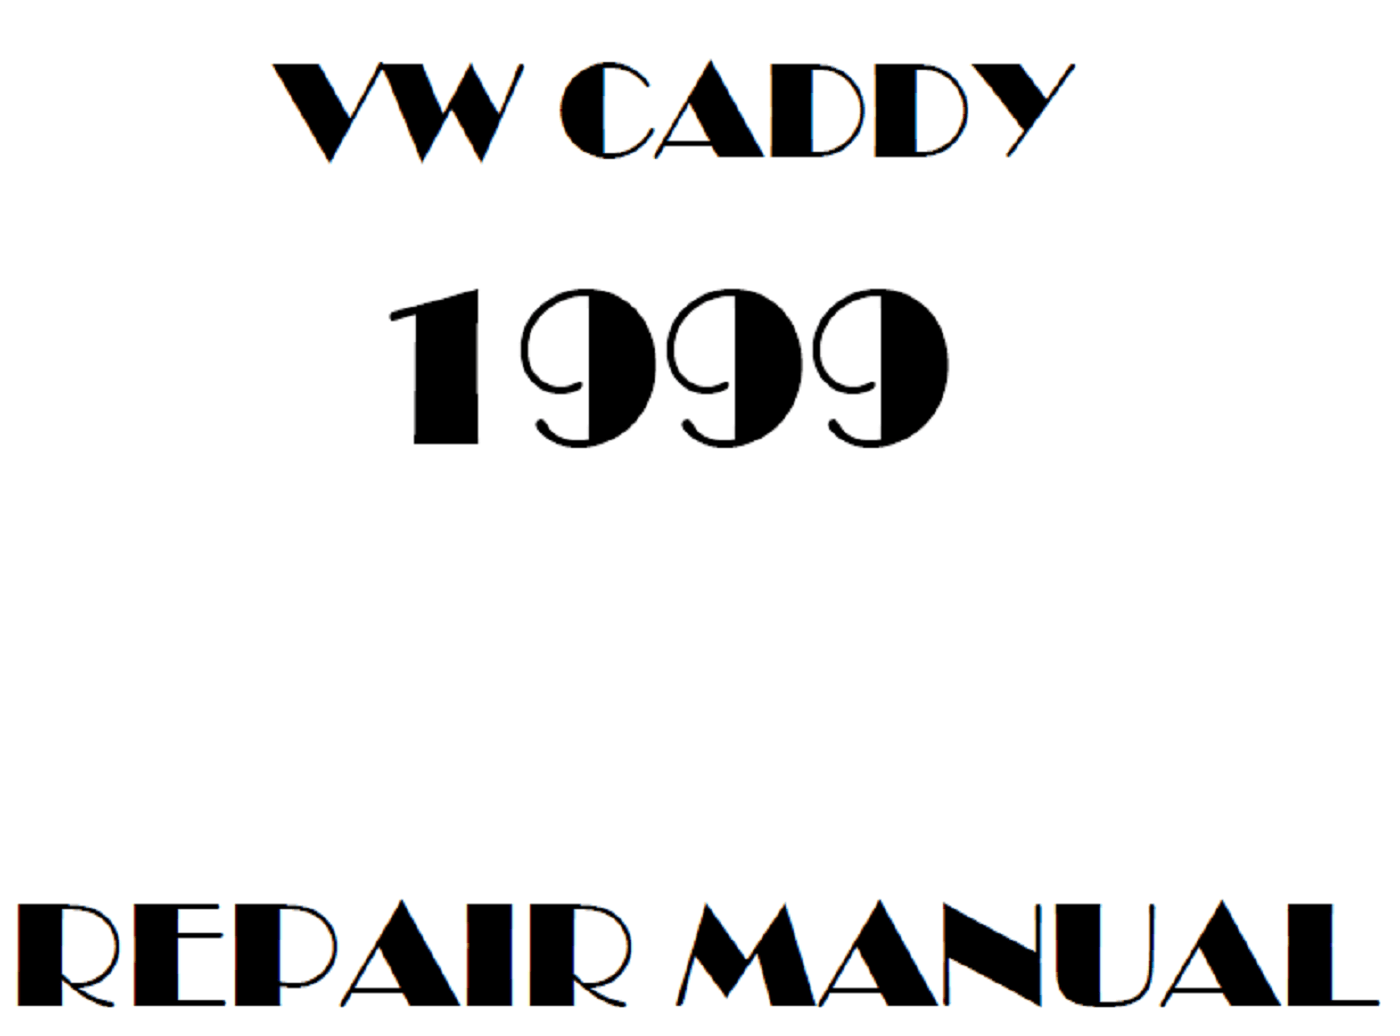 1999 Volkswagen Caddy repair manual